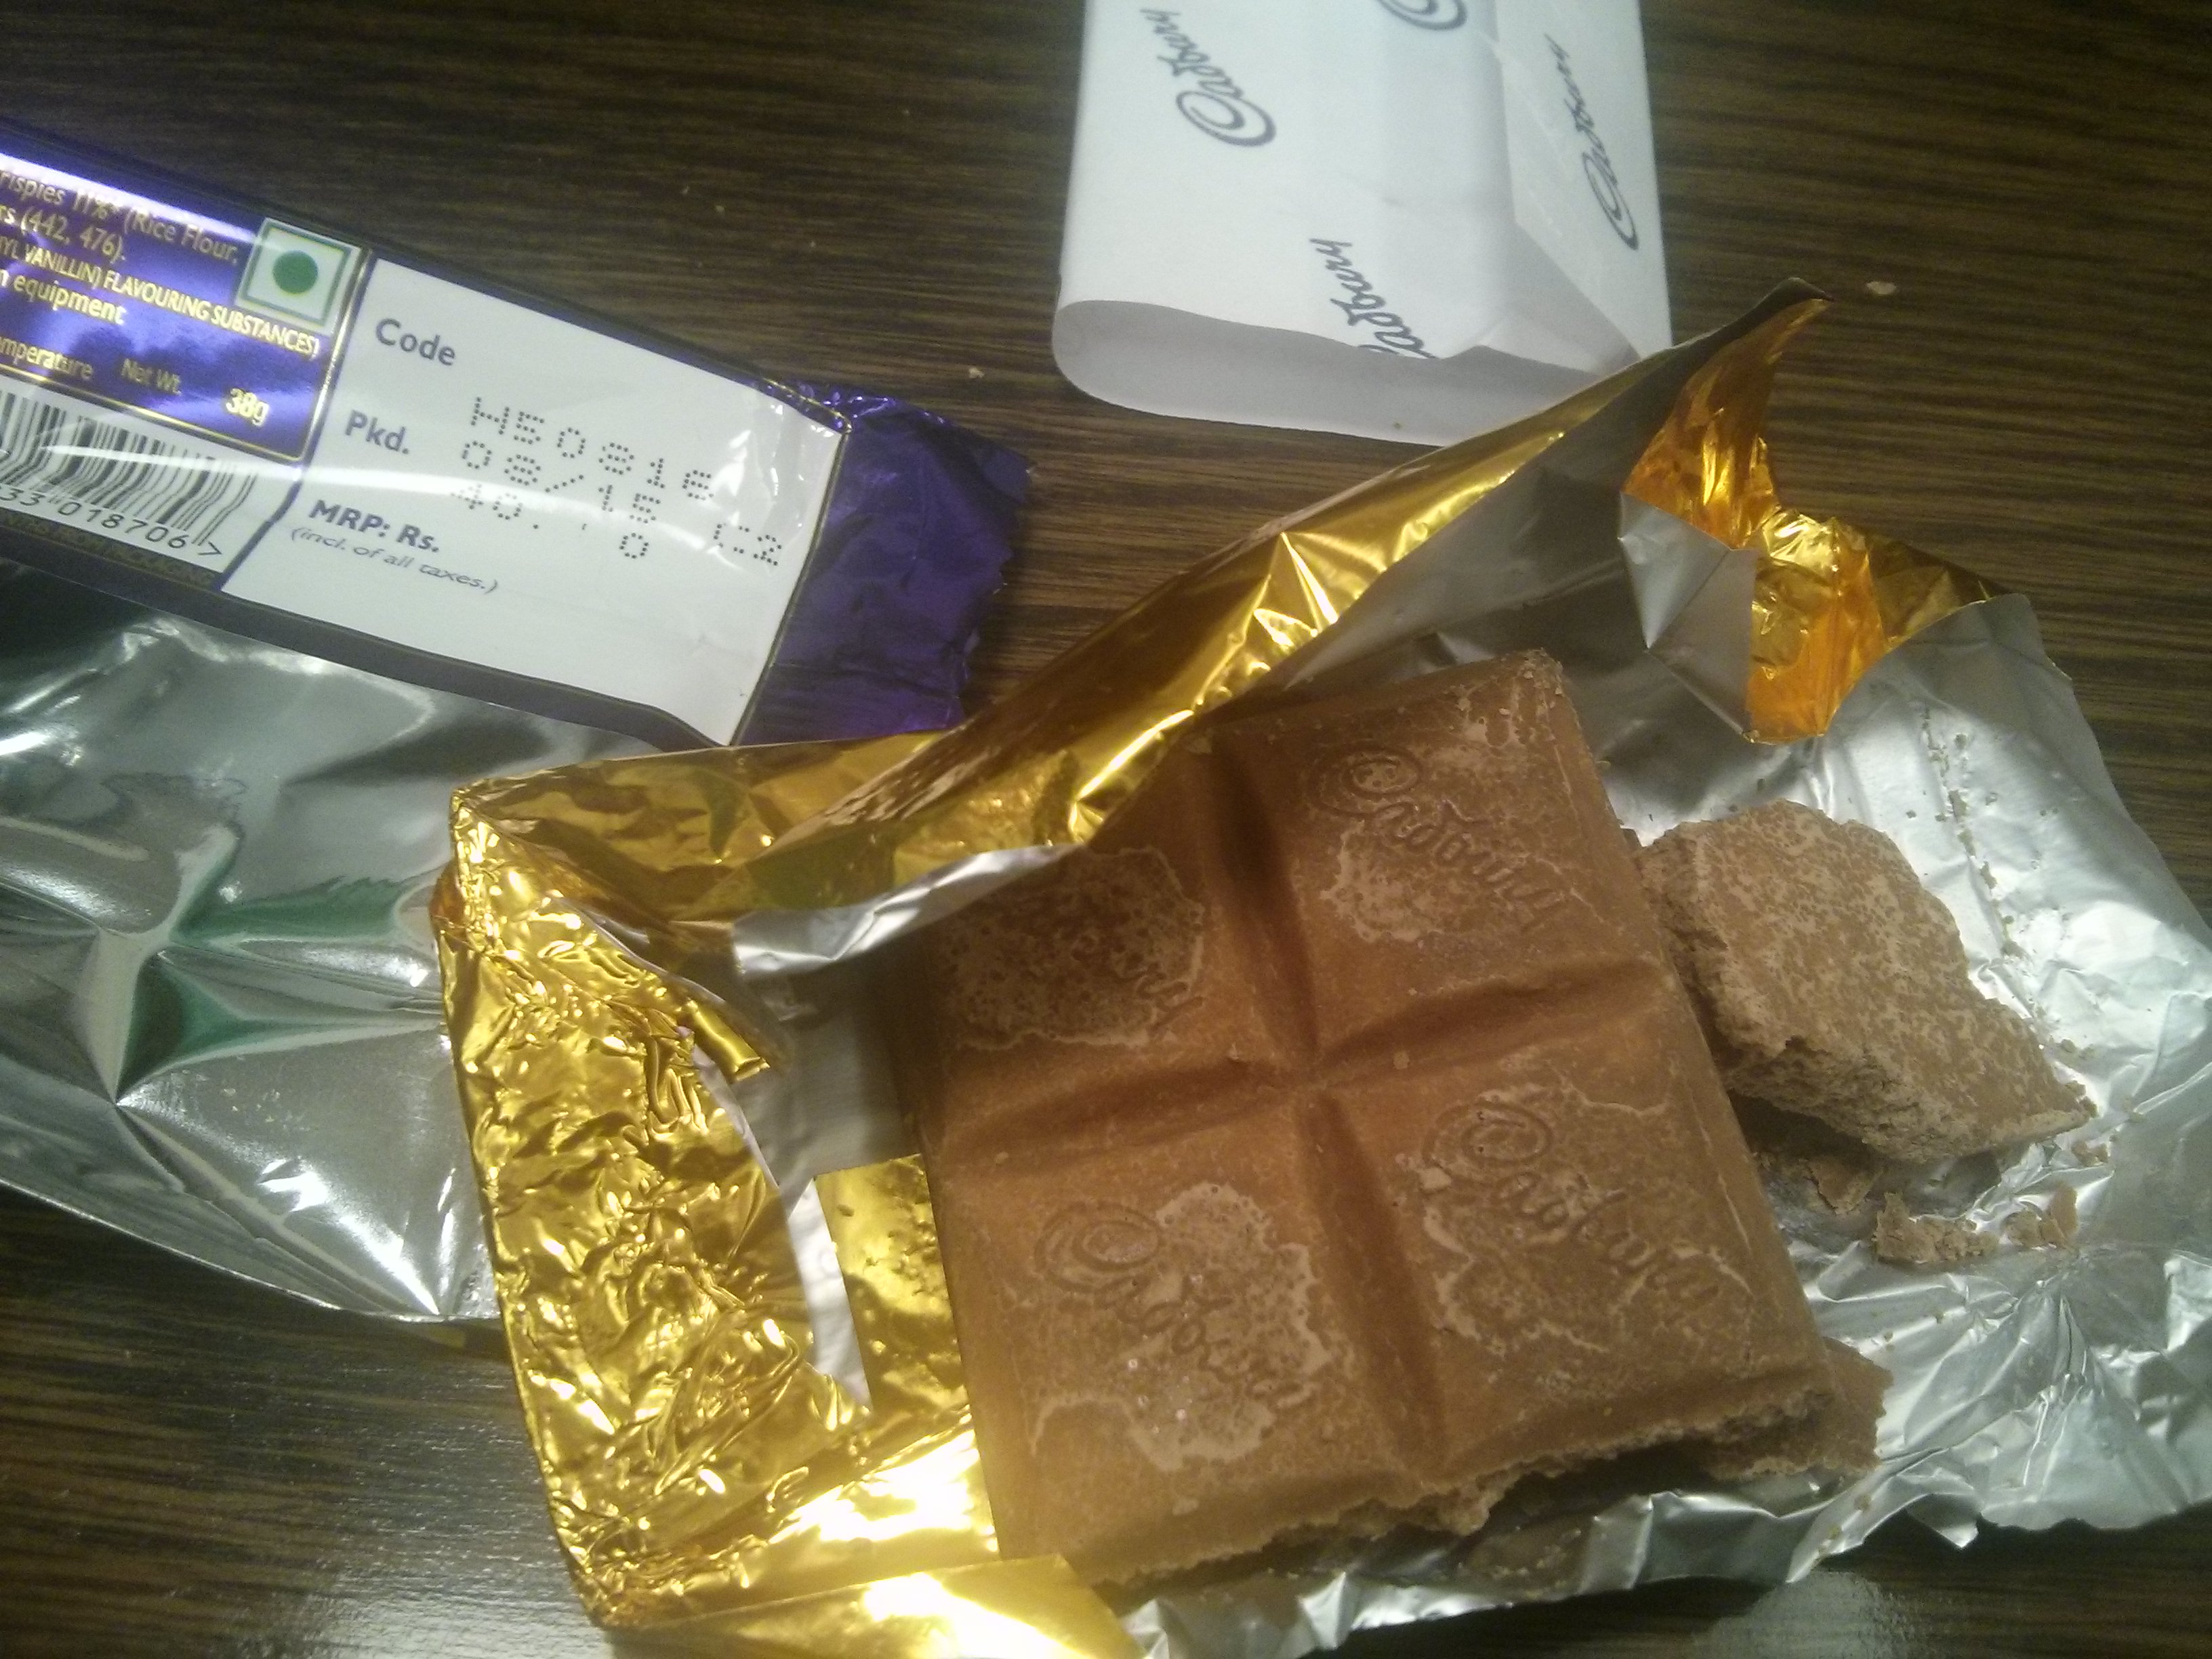 cadbury india 2pm: confectionery giant cadbury's has committed a gaffe of epic proportions after comparing a brand of chocolate to.